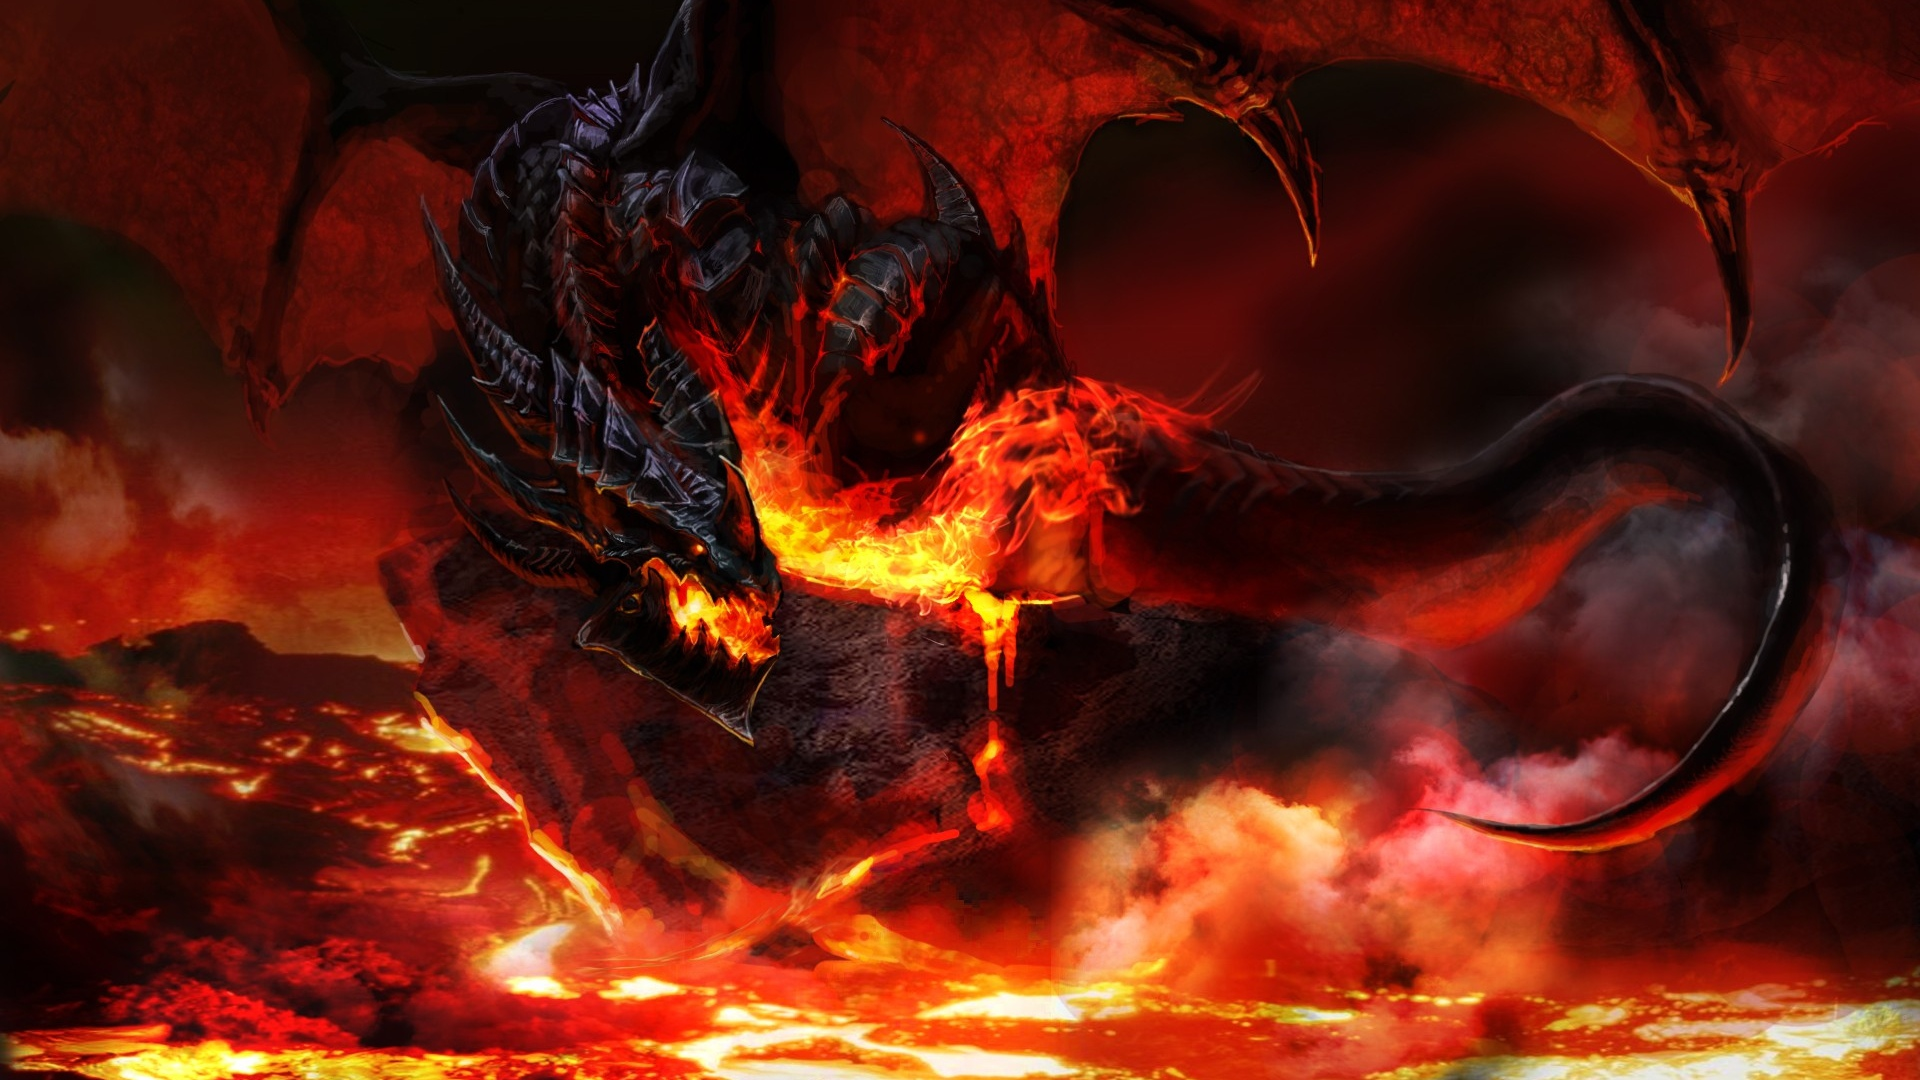 Wallpaper dragon hd - Dragon backgrounds 1920x1080 ...